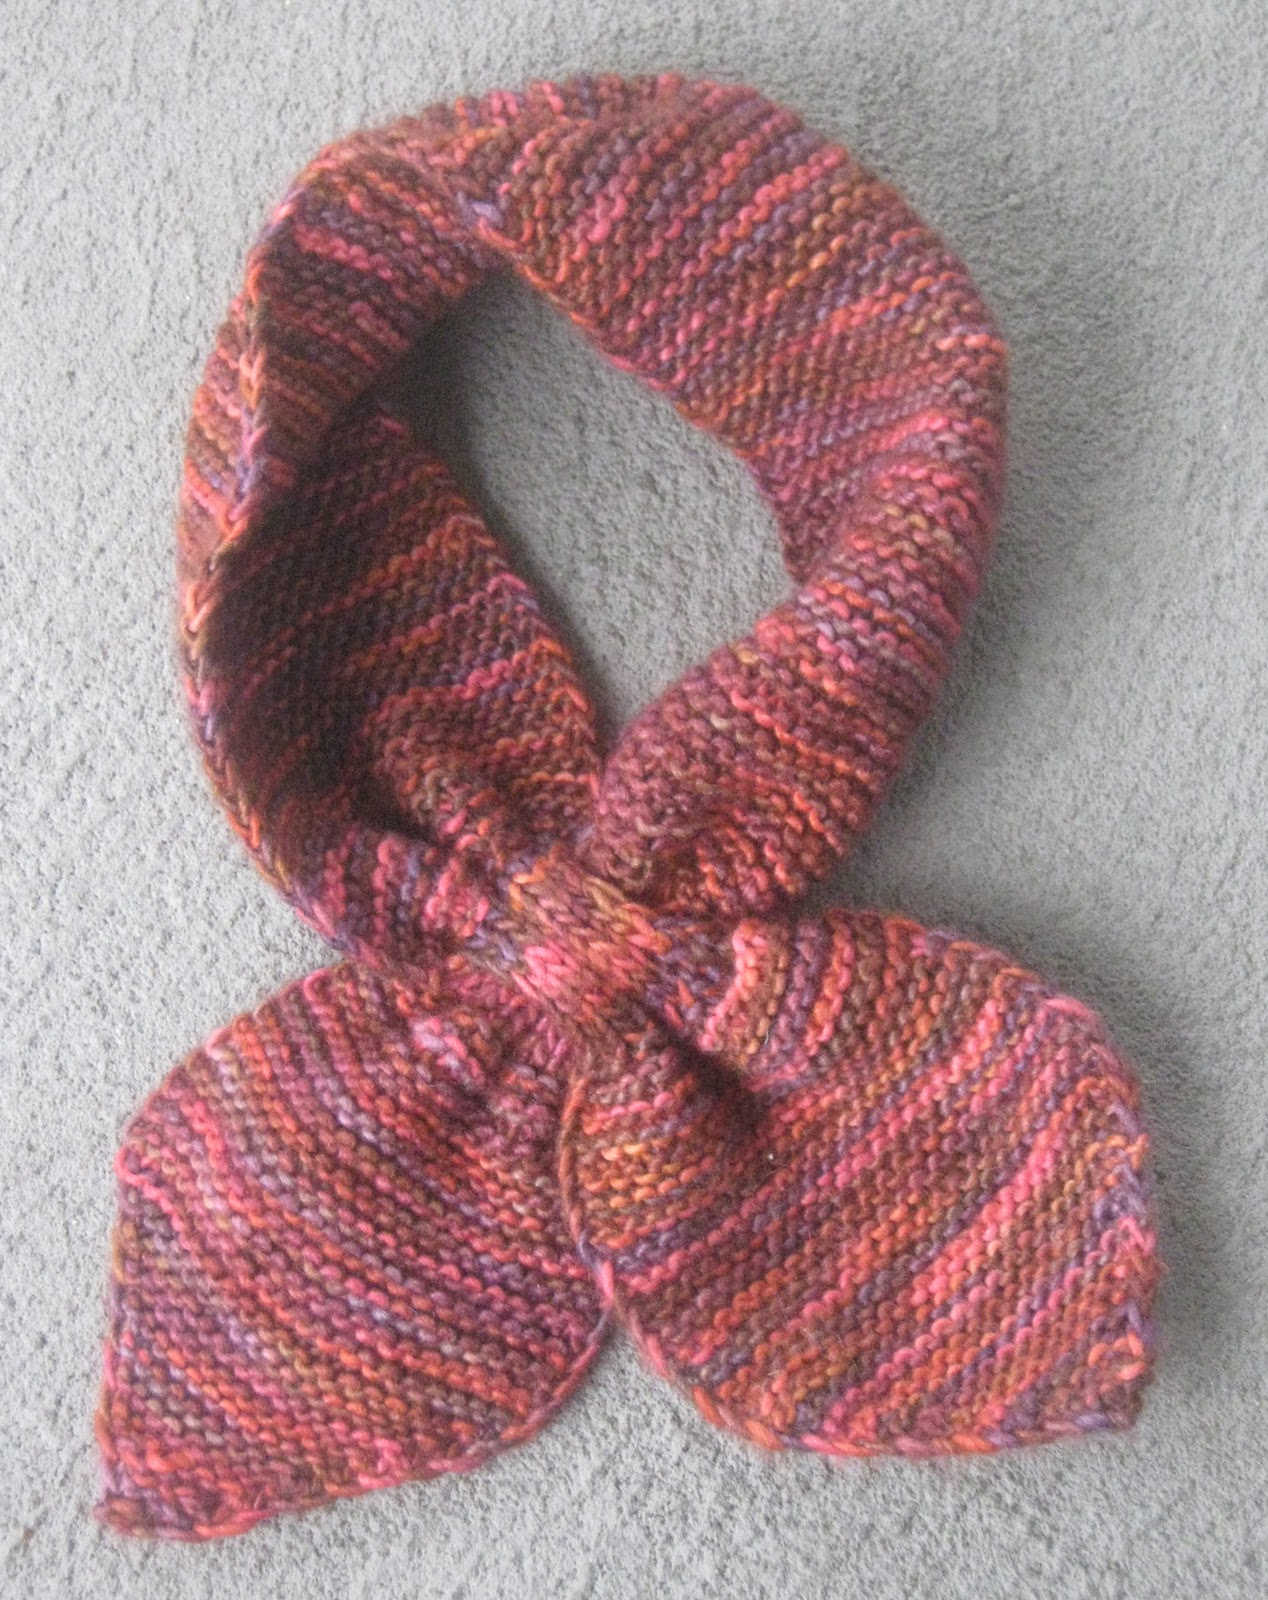 Knitting Pattern Bow Knot Scarf : Knit Bow Tie Scarf Pattern images